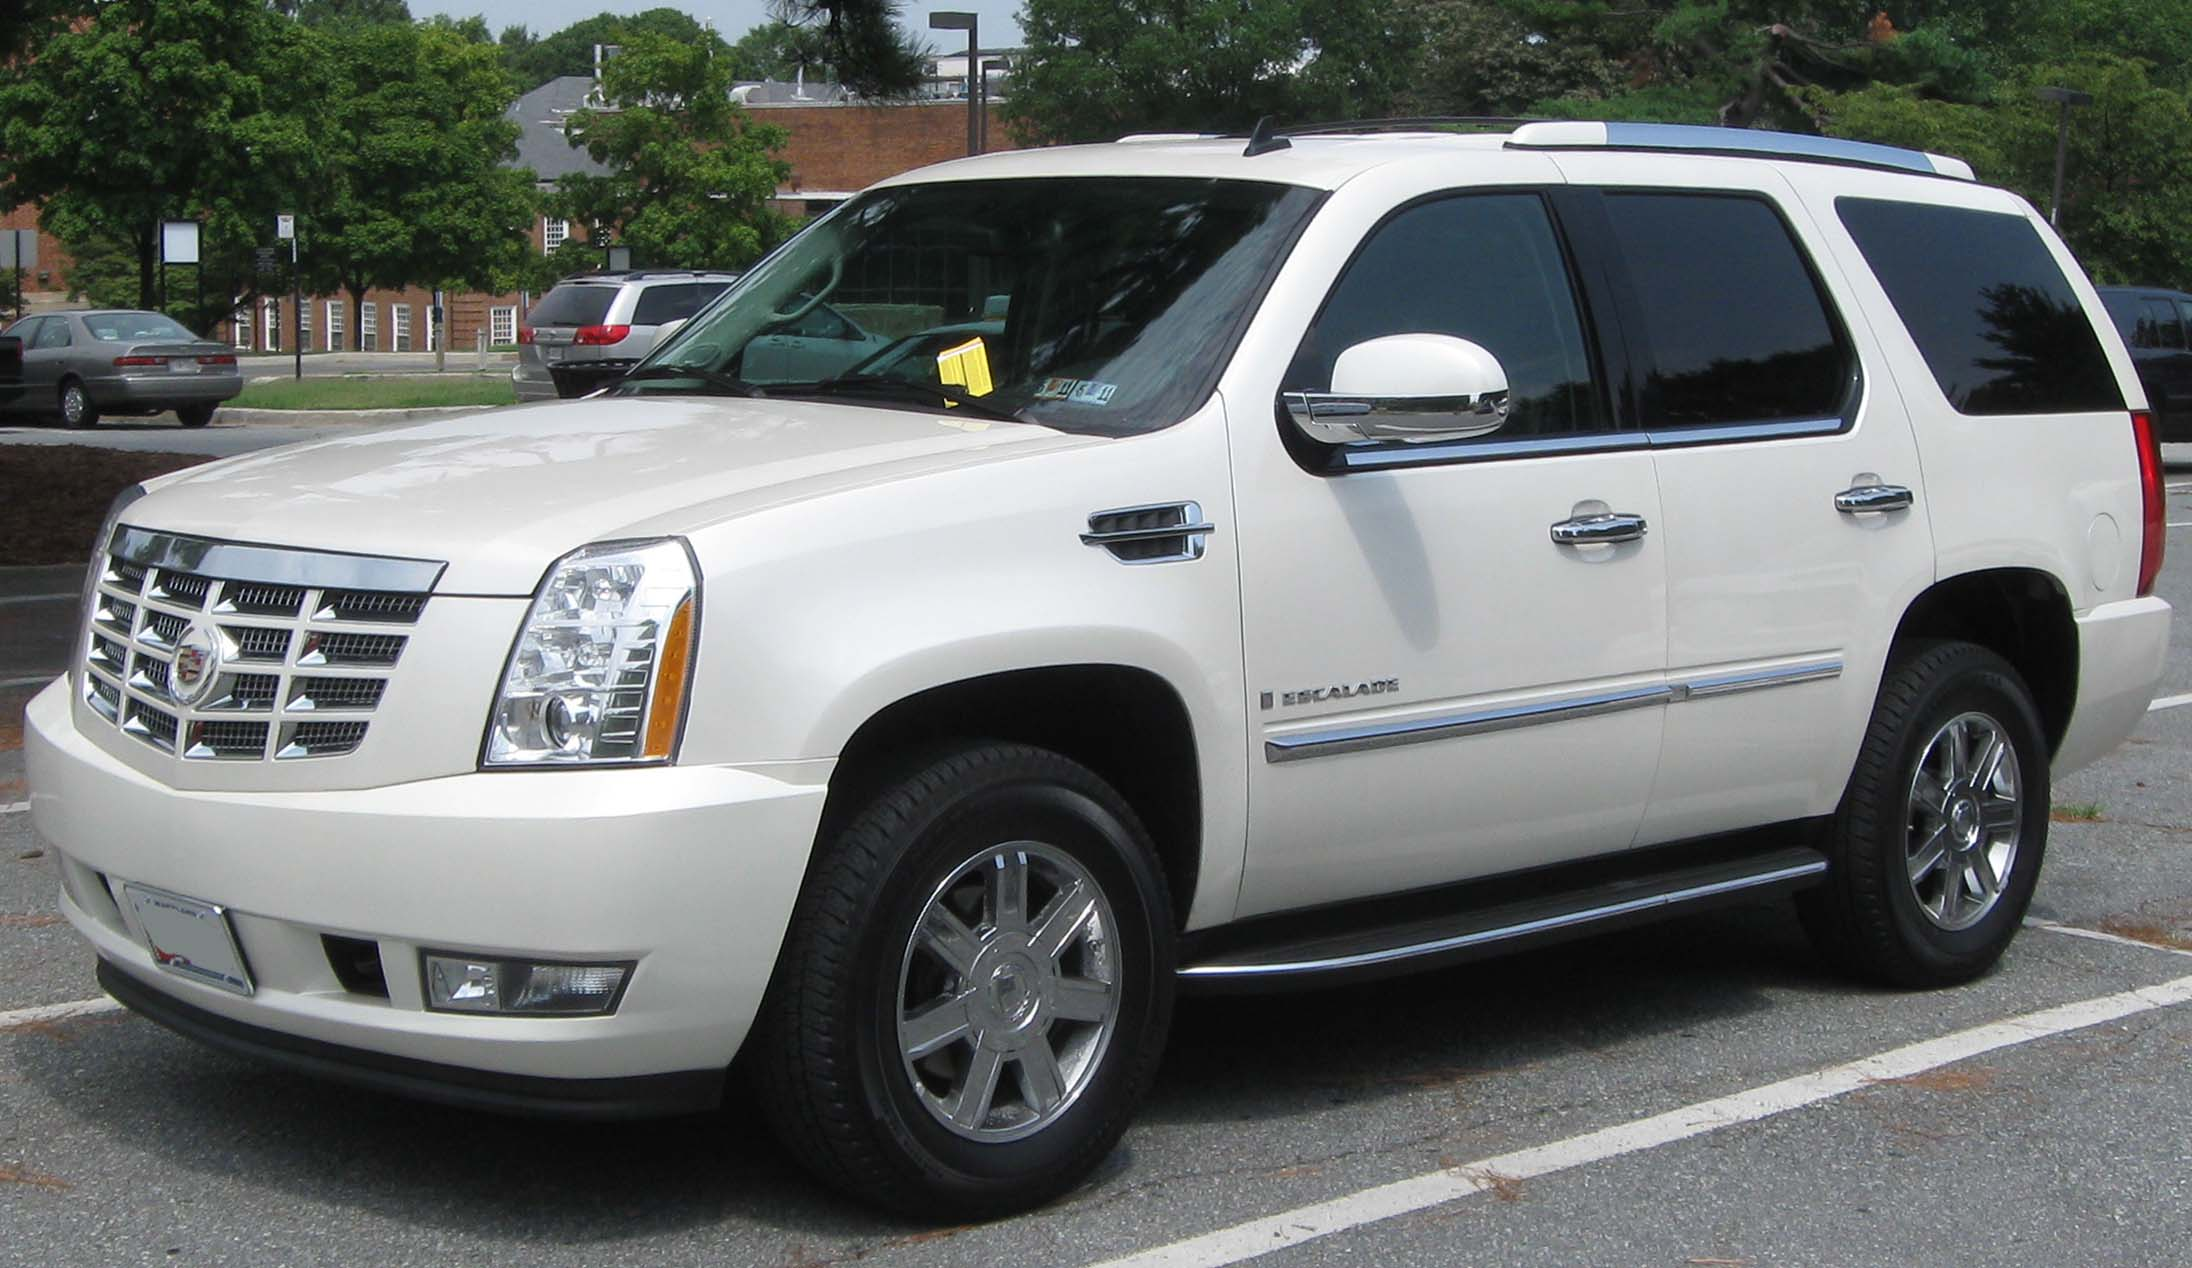 Pictures of cadillac escalade #4